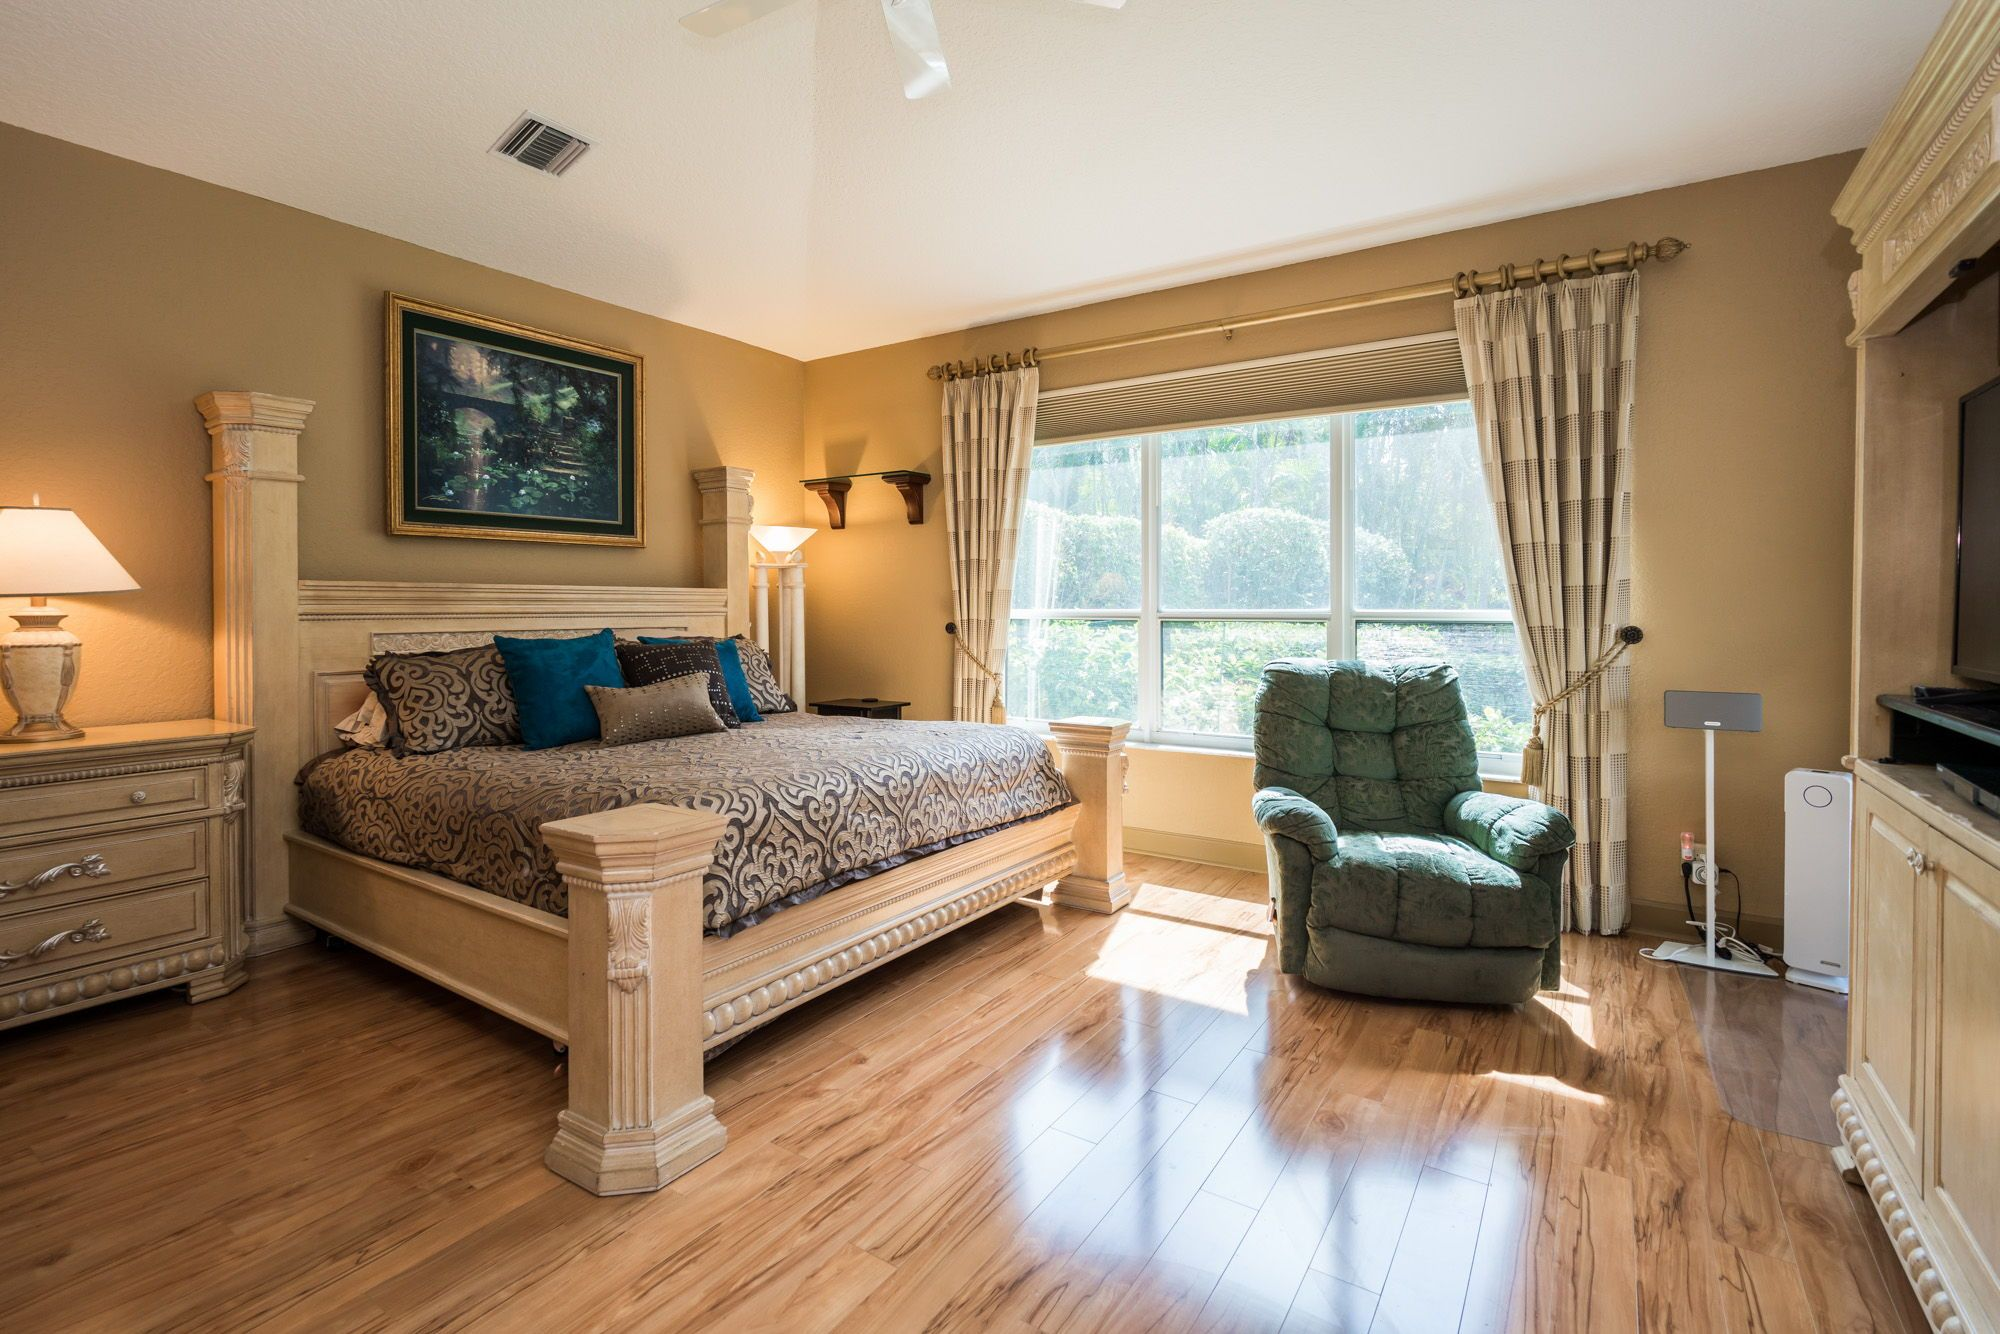 2 window bedroom ideas  the master suite is spacious and has darkening shades operated